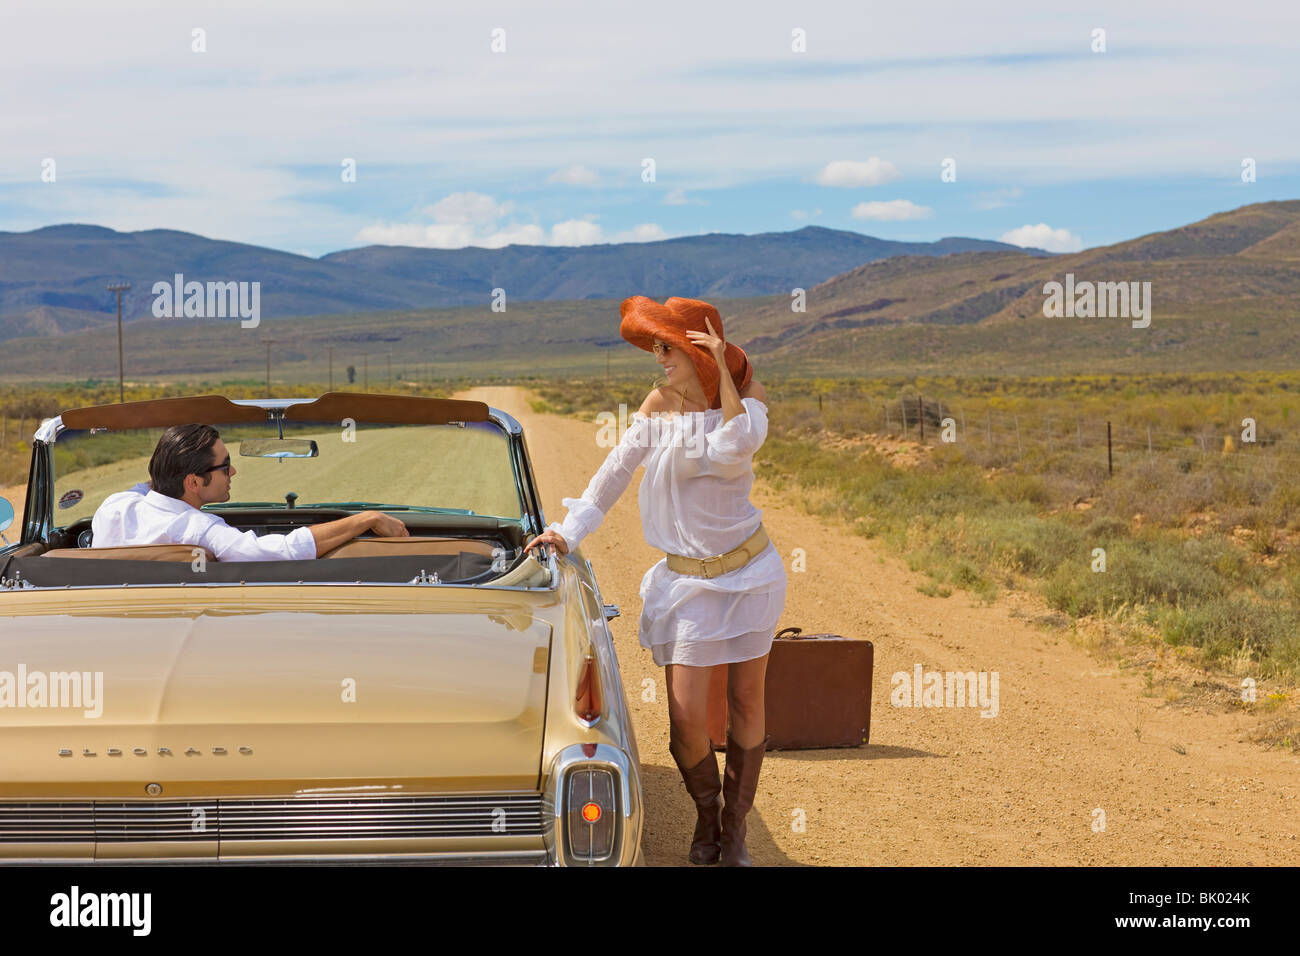 Woman hitching on desert road - Stock Image